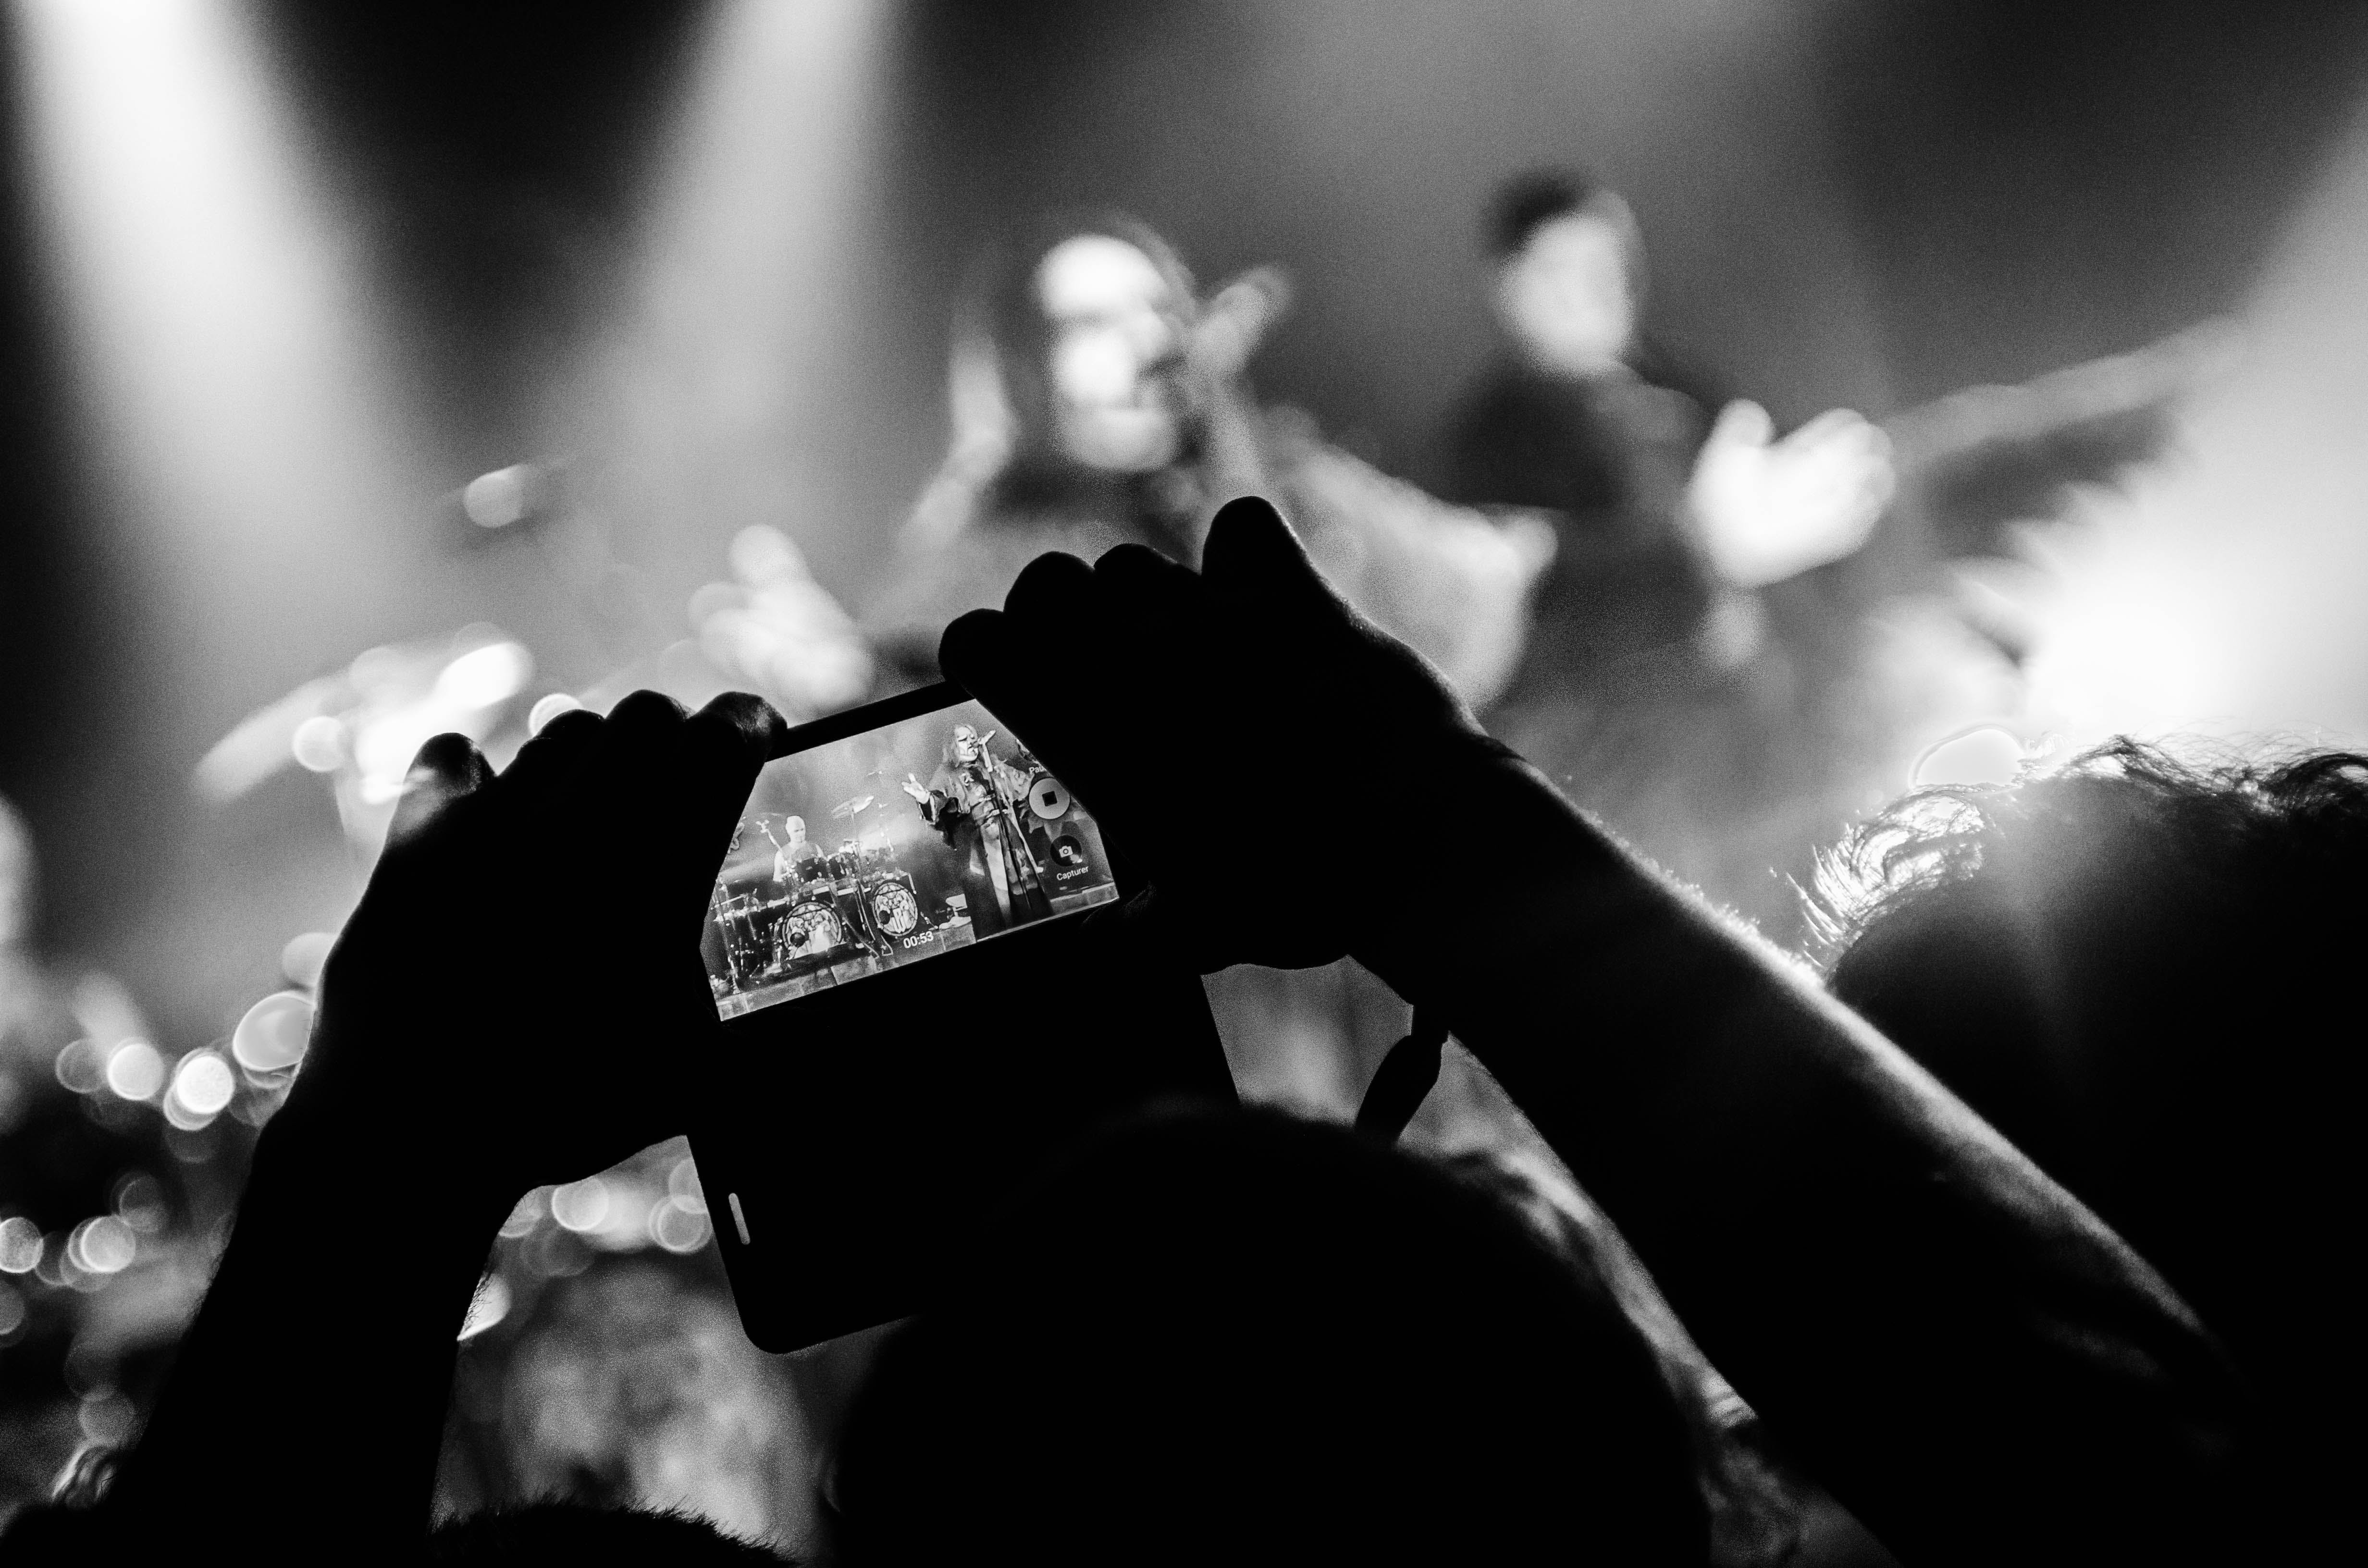 Grayscale Photography of Person Taking Picture of Band